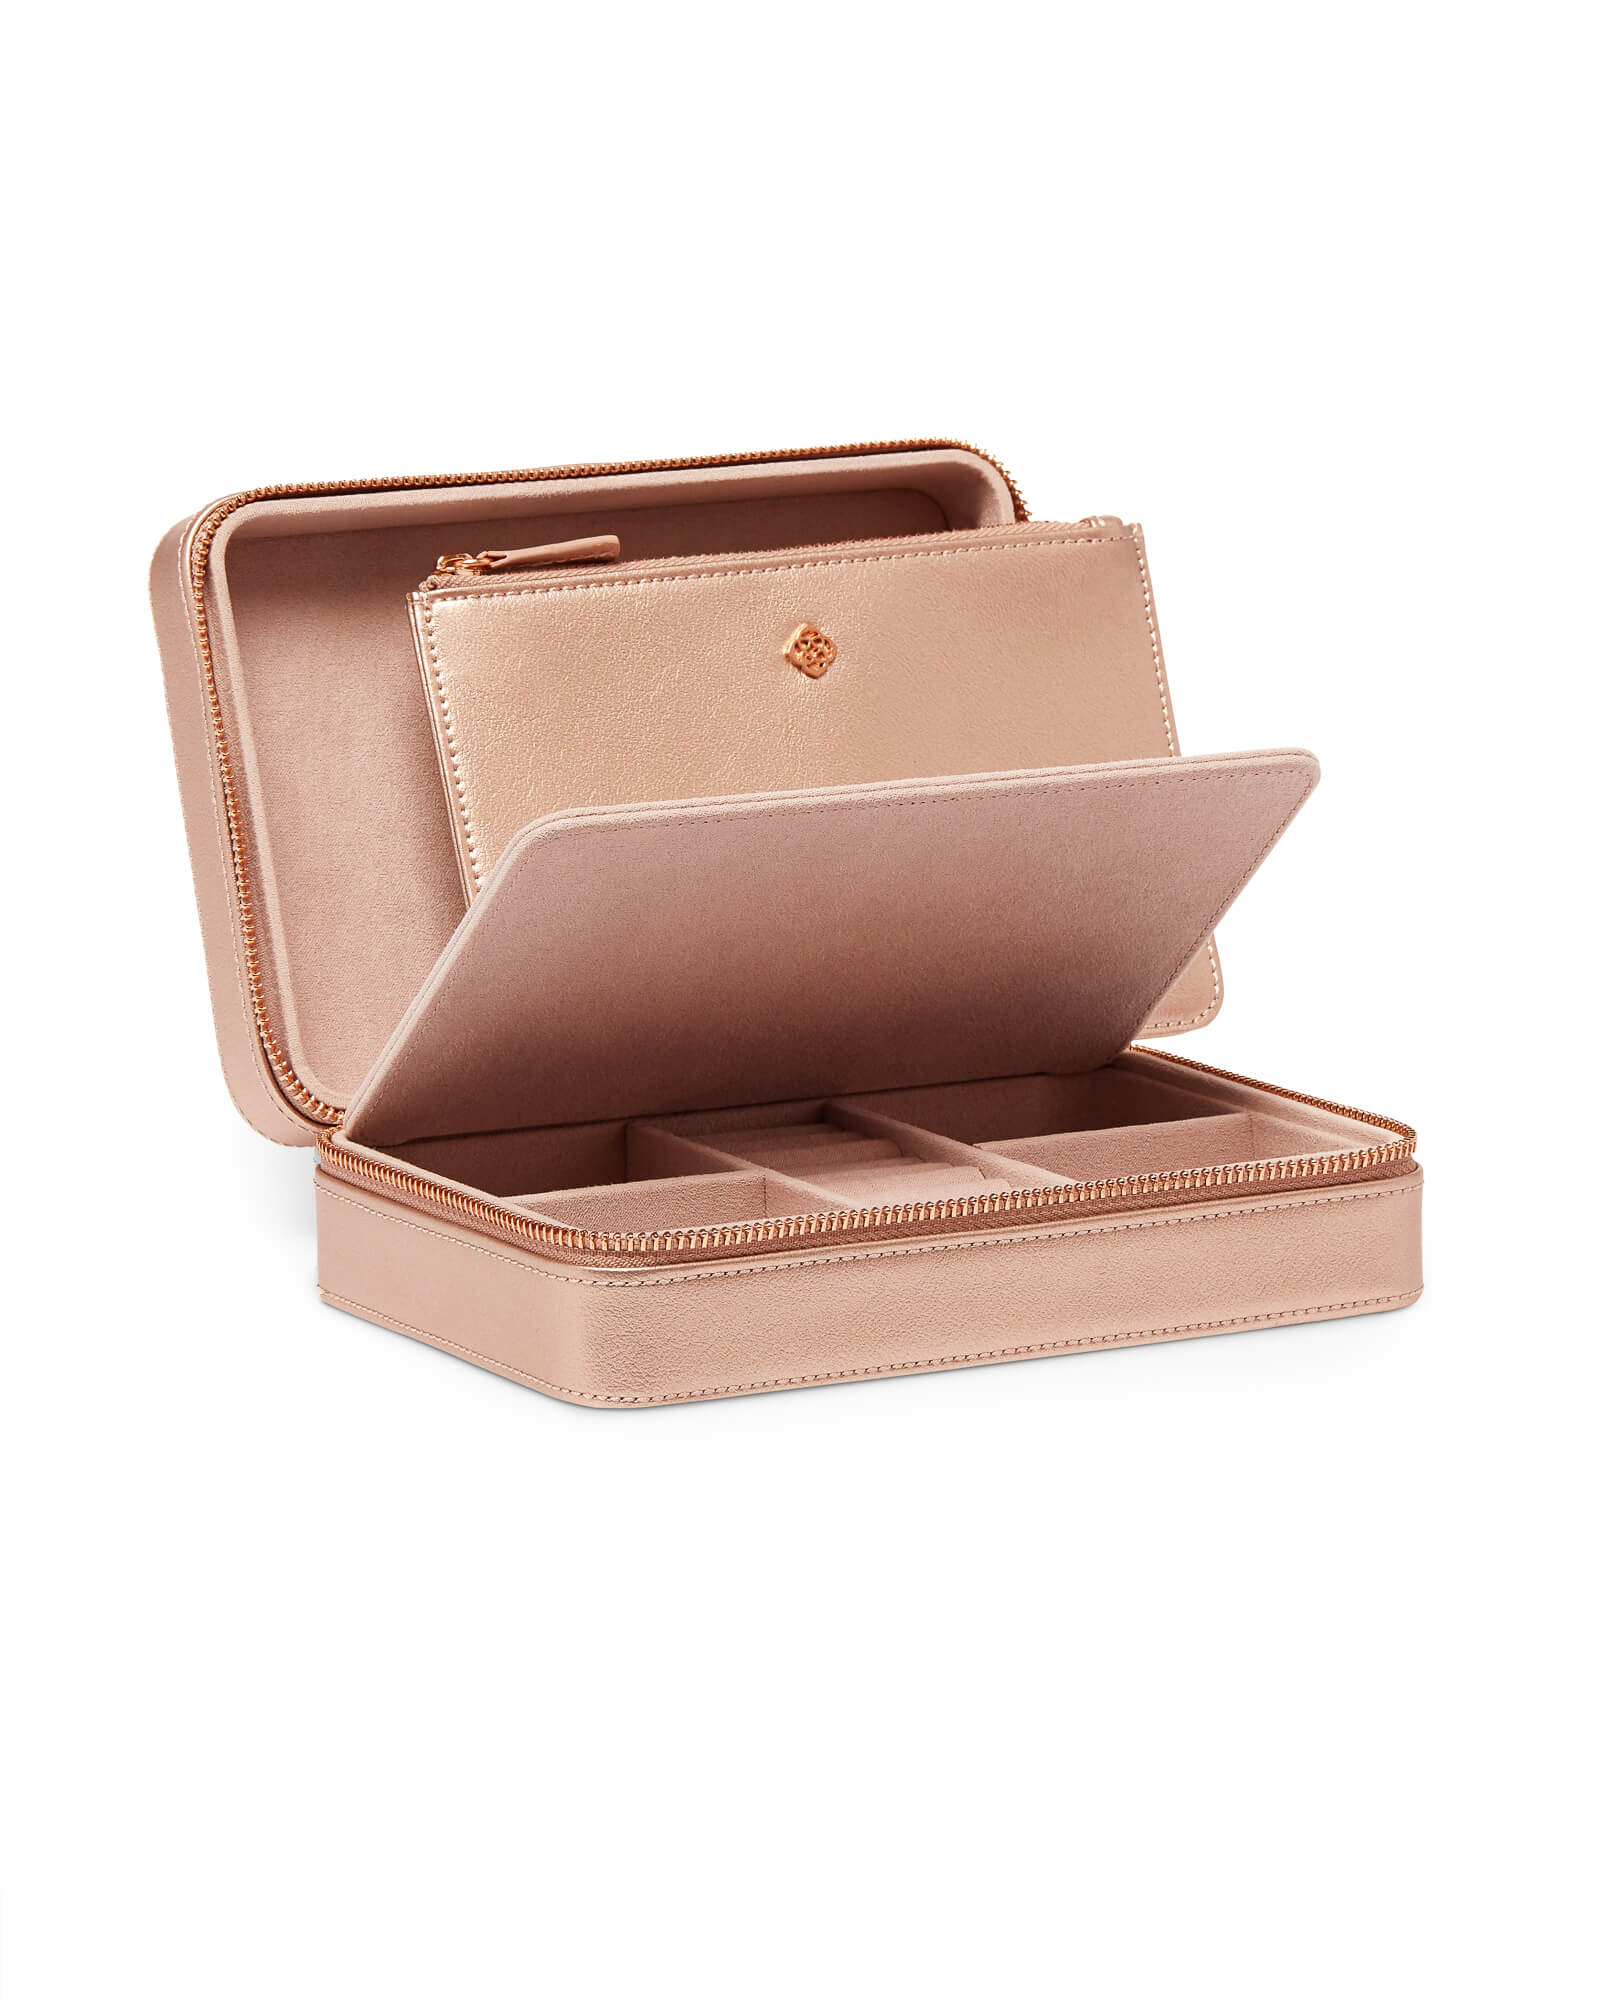 Medium Travel Jewelry Case in Rose Gold